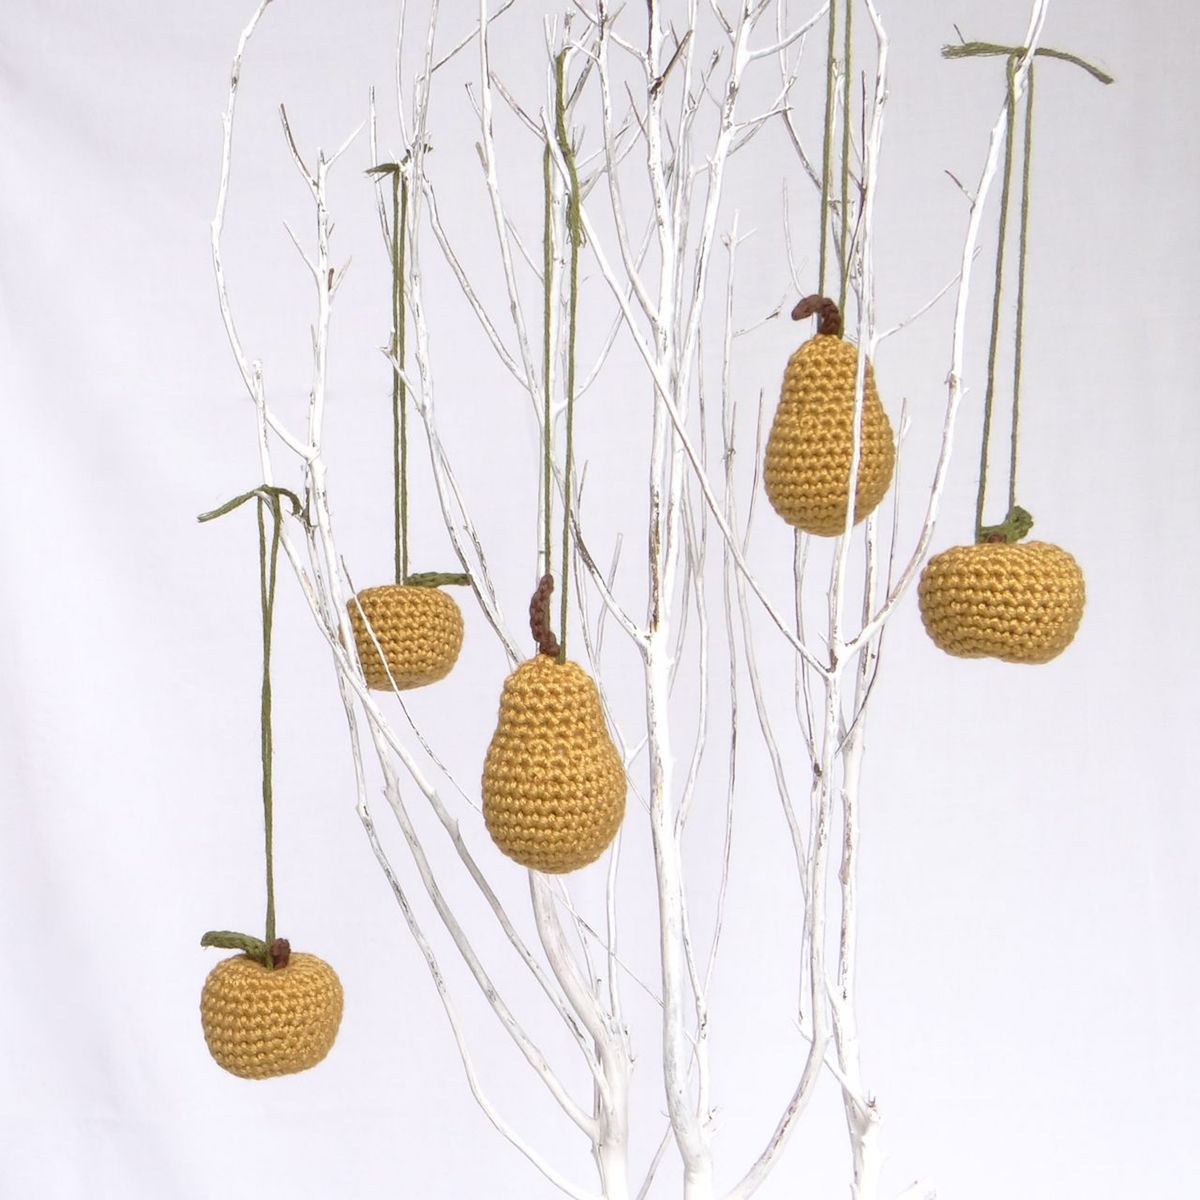 Mini pear and apple hanging decorations